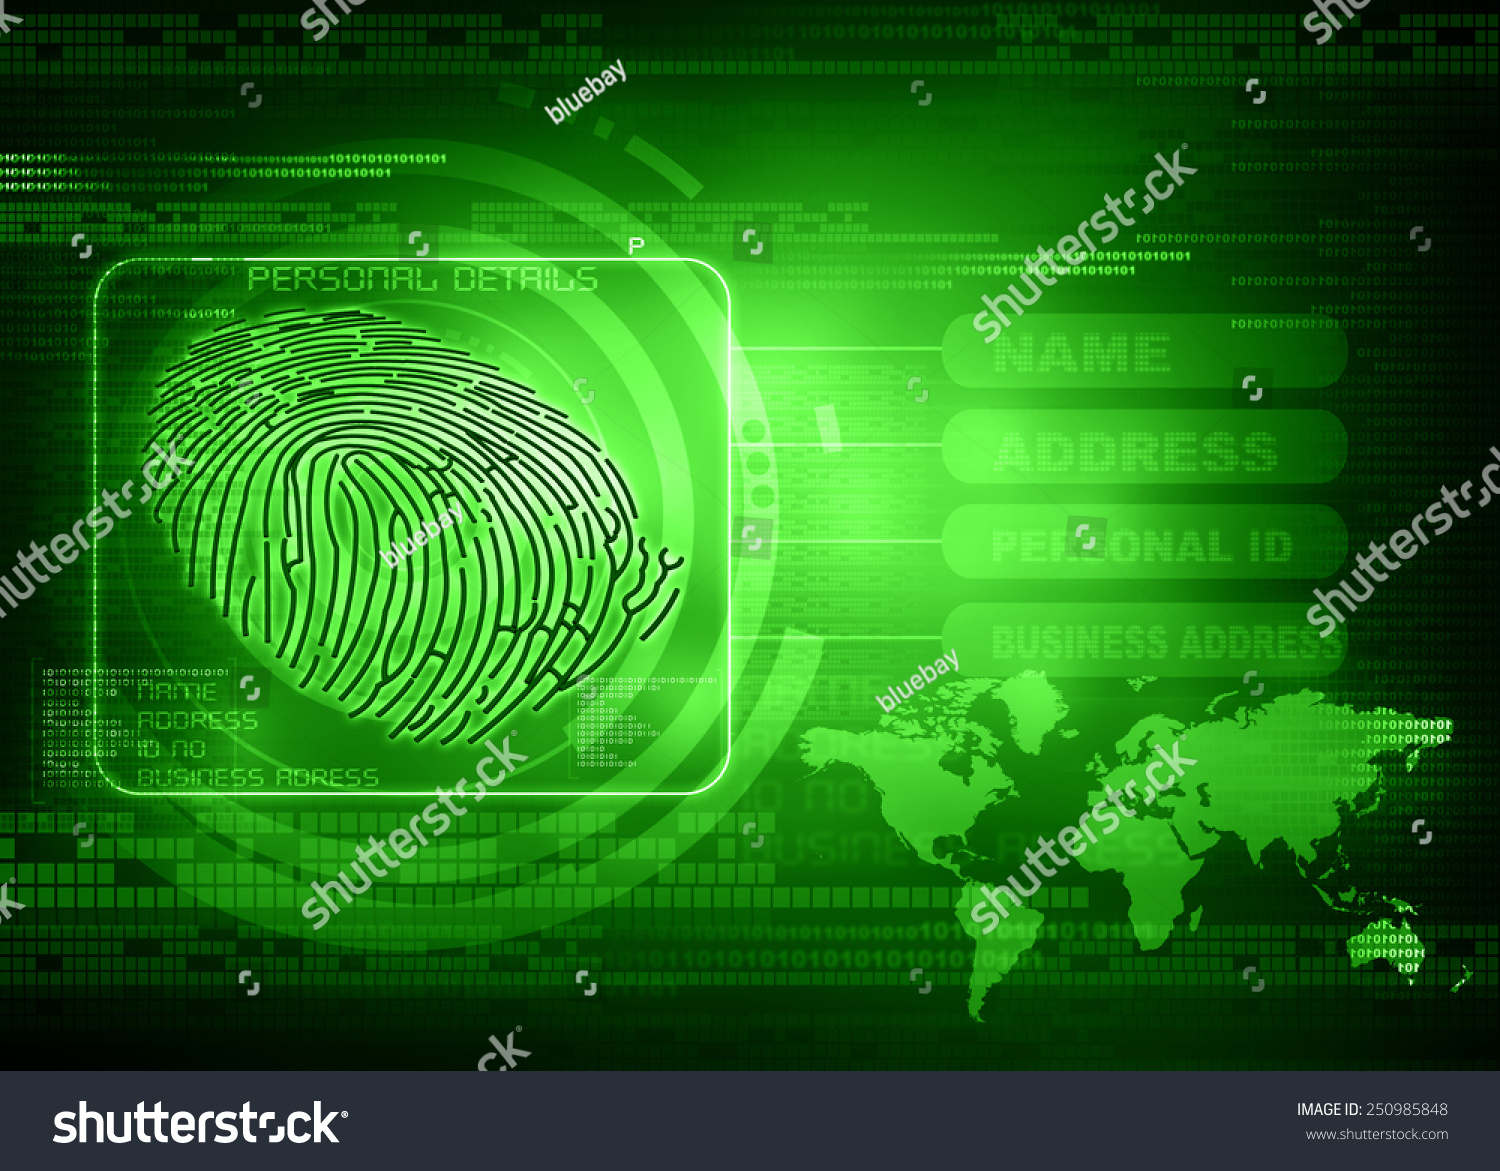 New Technology Of Thumb Impression Finger Print Identity Abstract Wireframe Globe On Circuit Board And Binary Code Background Ez Canvas